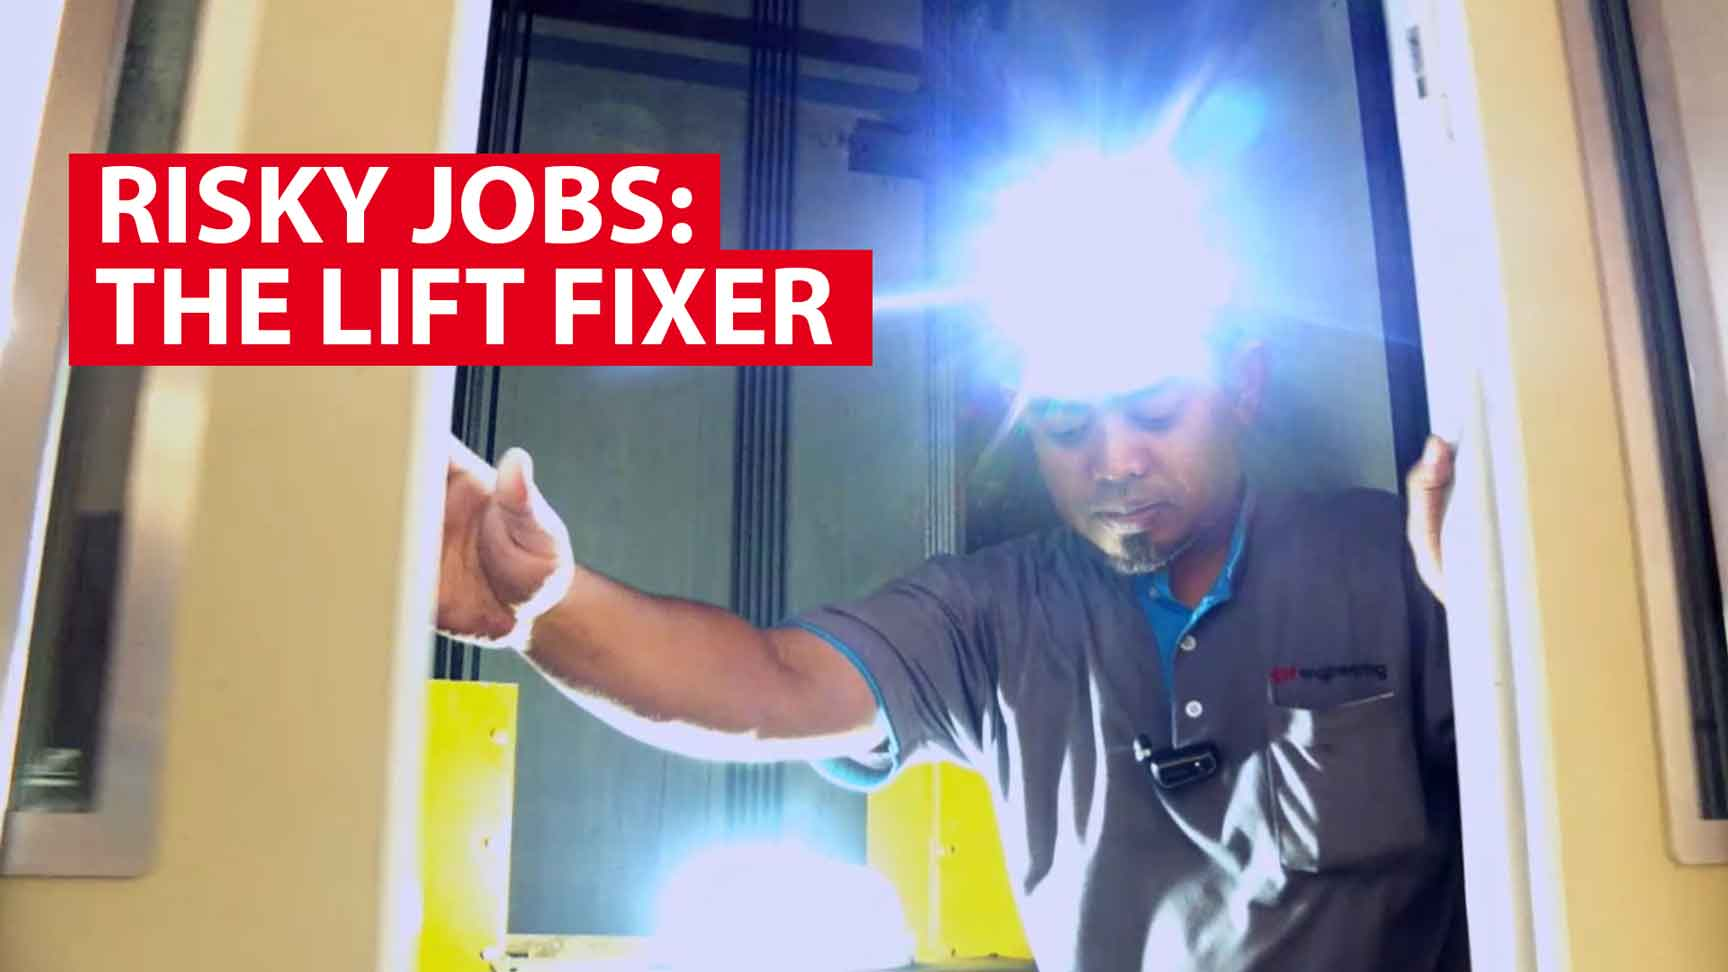 Risky jobs: The lift fixer